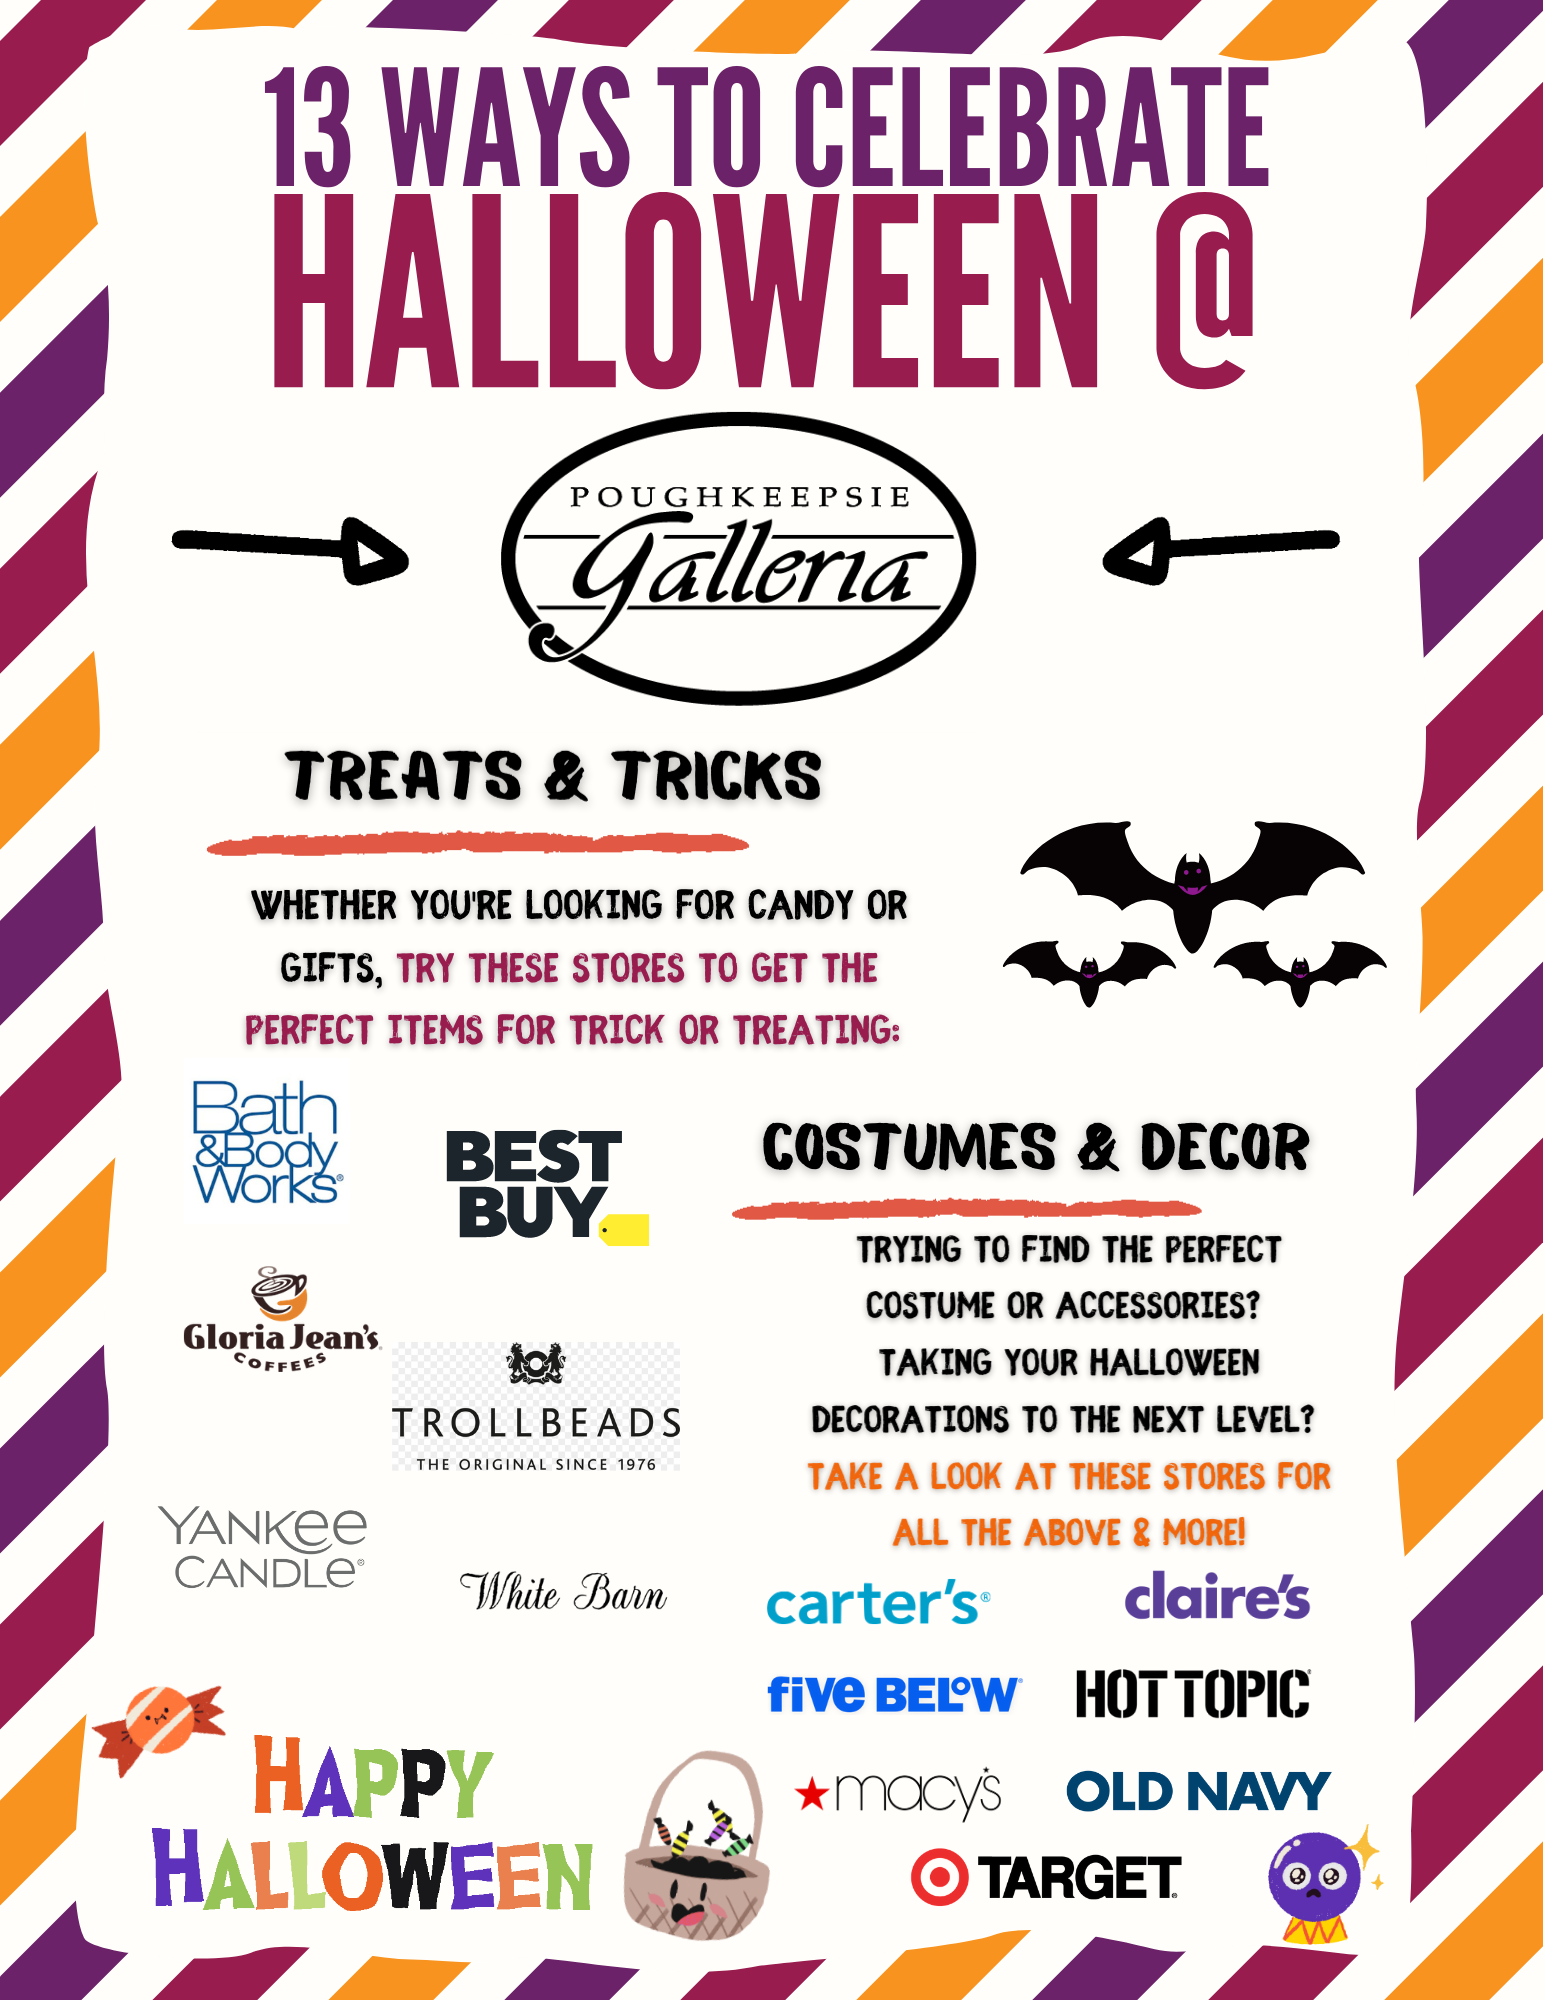 13 ways to celebrate Halloween at Poughkeepsie Galleria